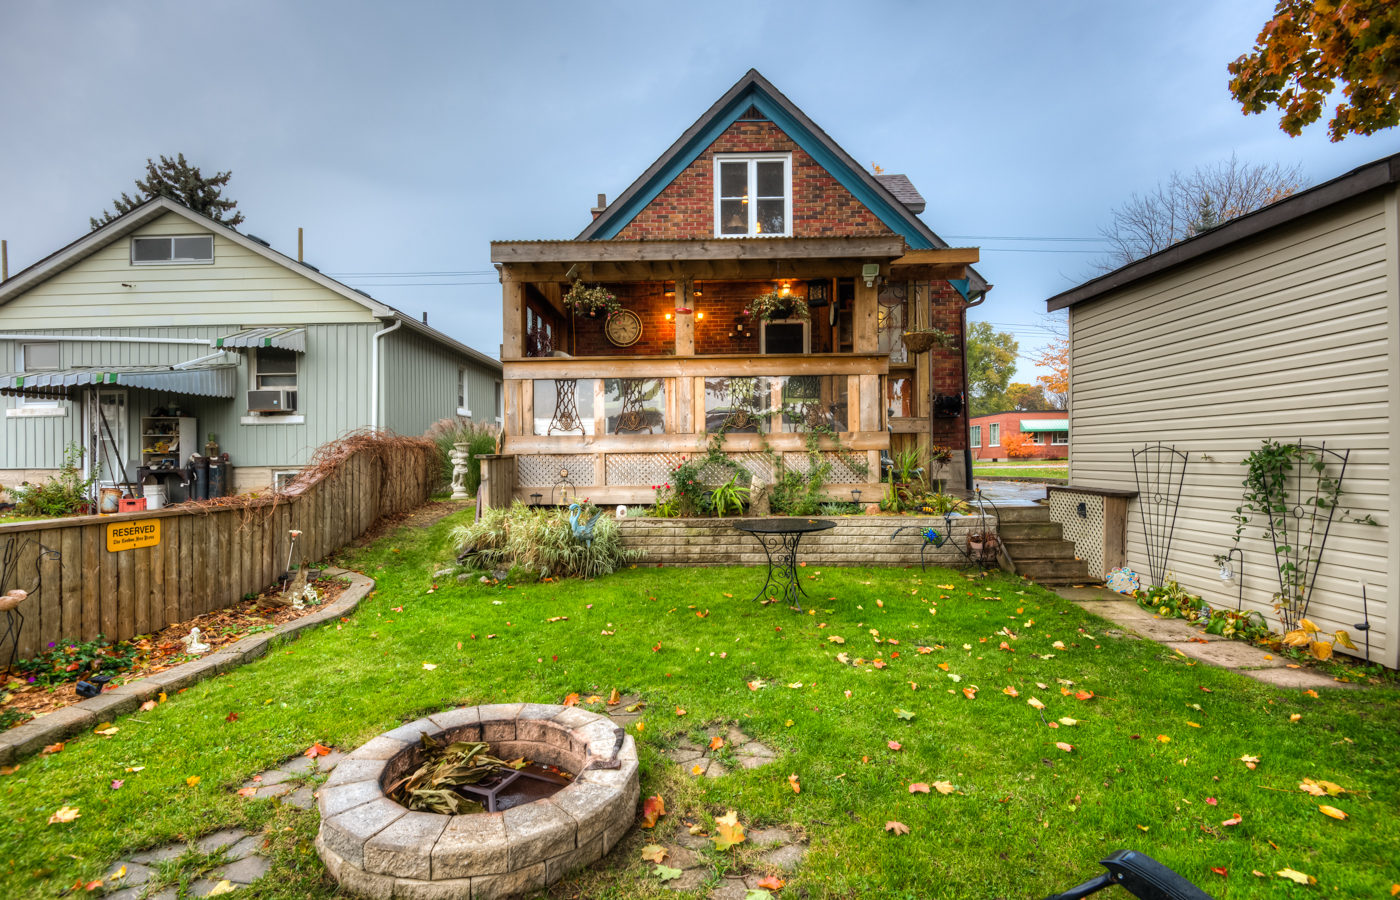 For Sale 459 Mill St Kitchener On N2g2y5 Shaw Realty Group